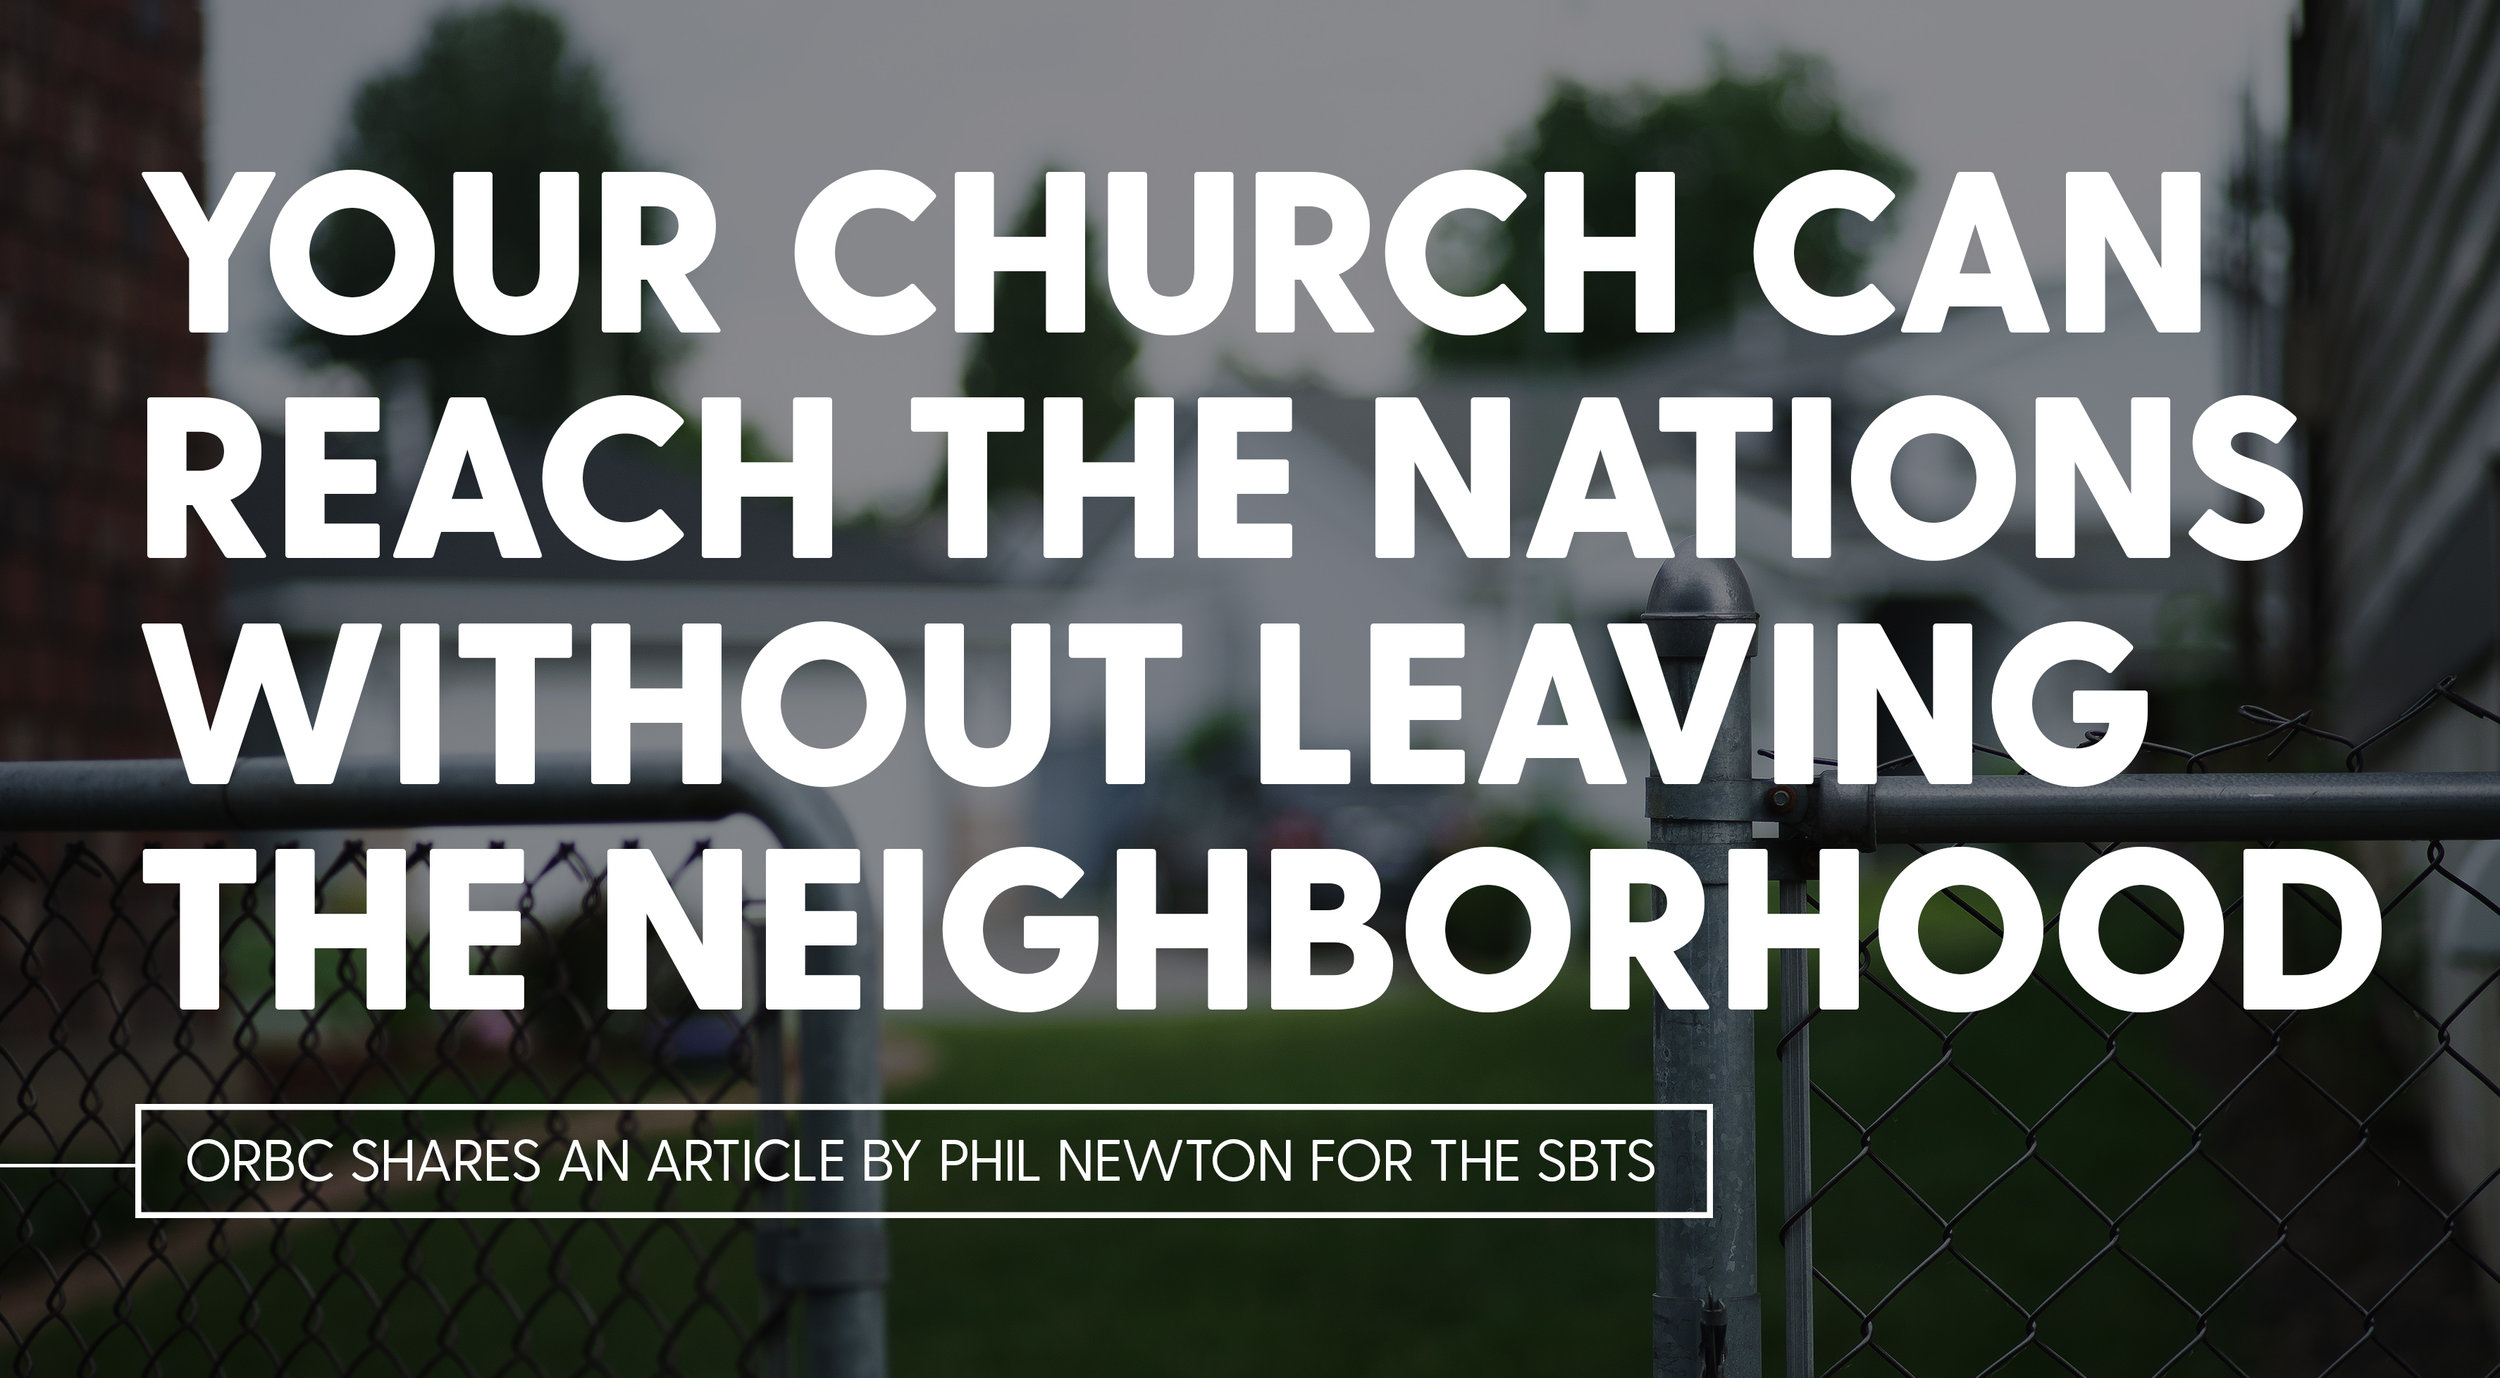 Your Church Can Reach the Nations Without Leaving the Neighborhood.jpg